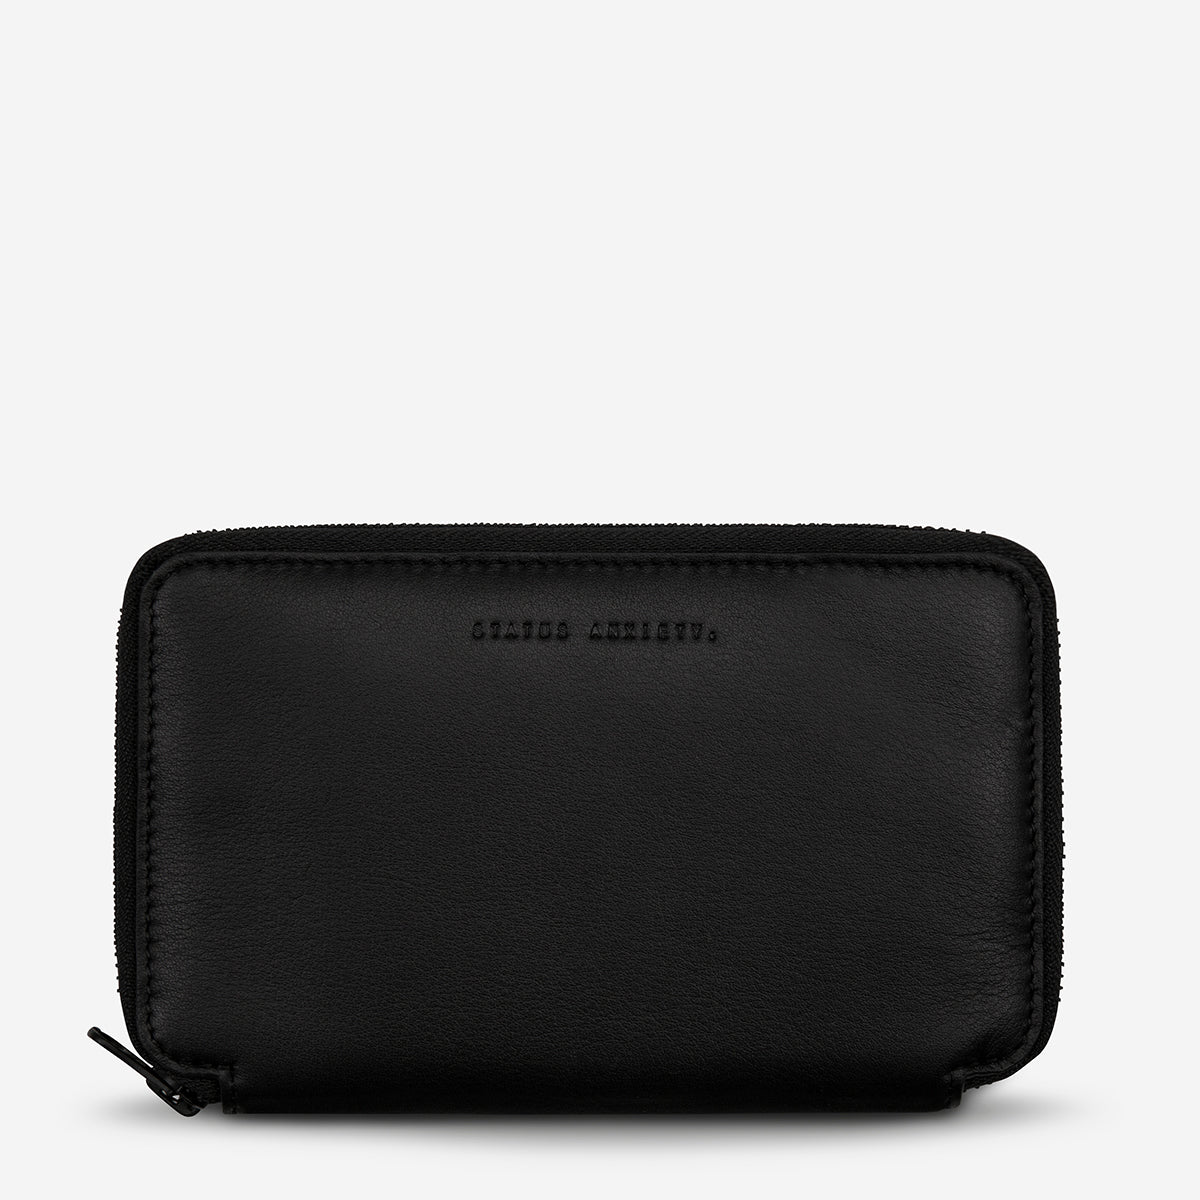 Status Anxiety Leather Travel Wallet Vow Black